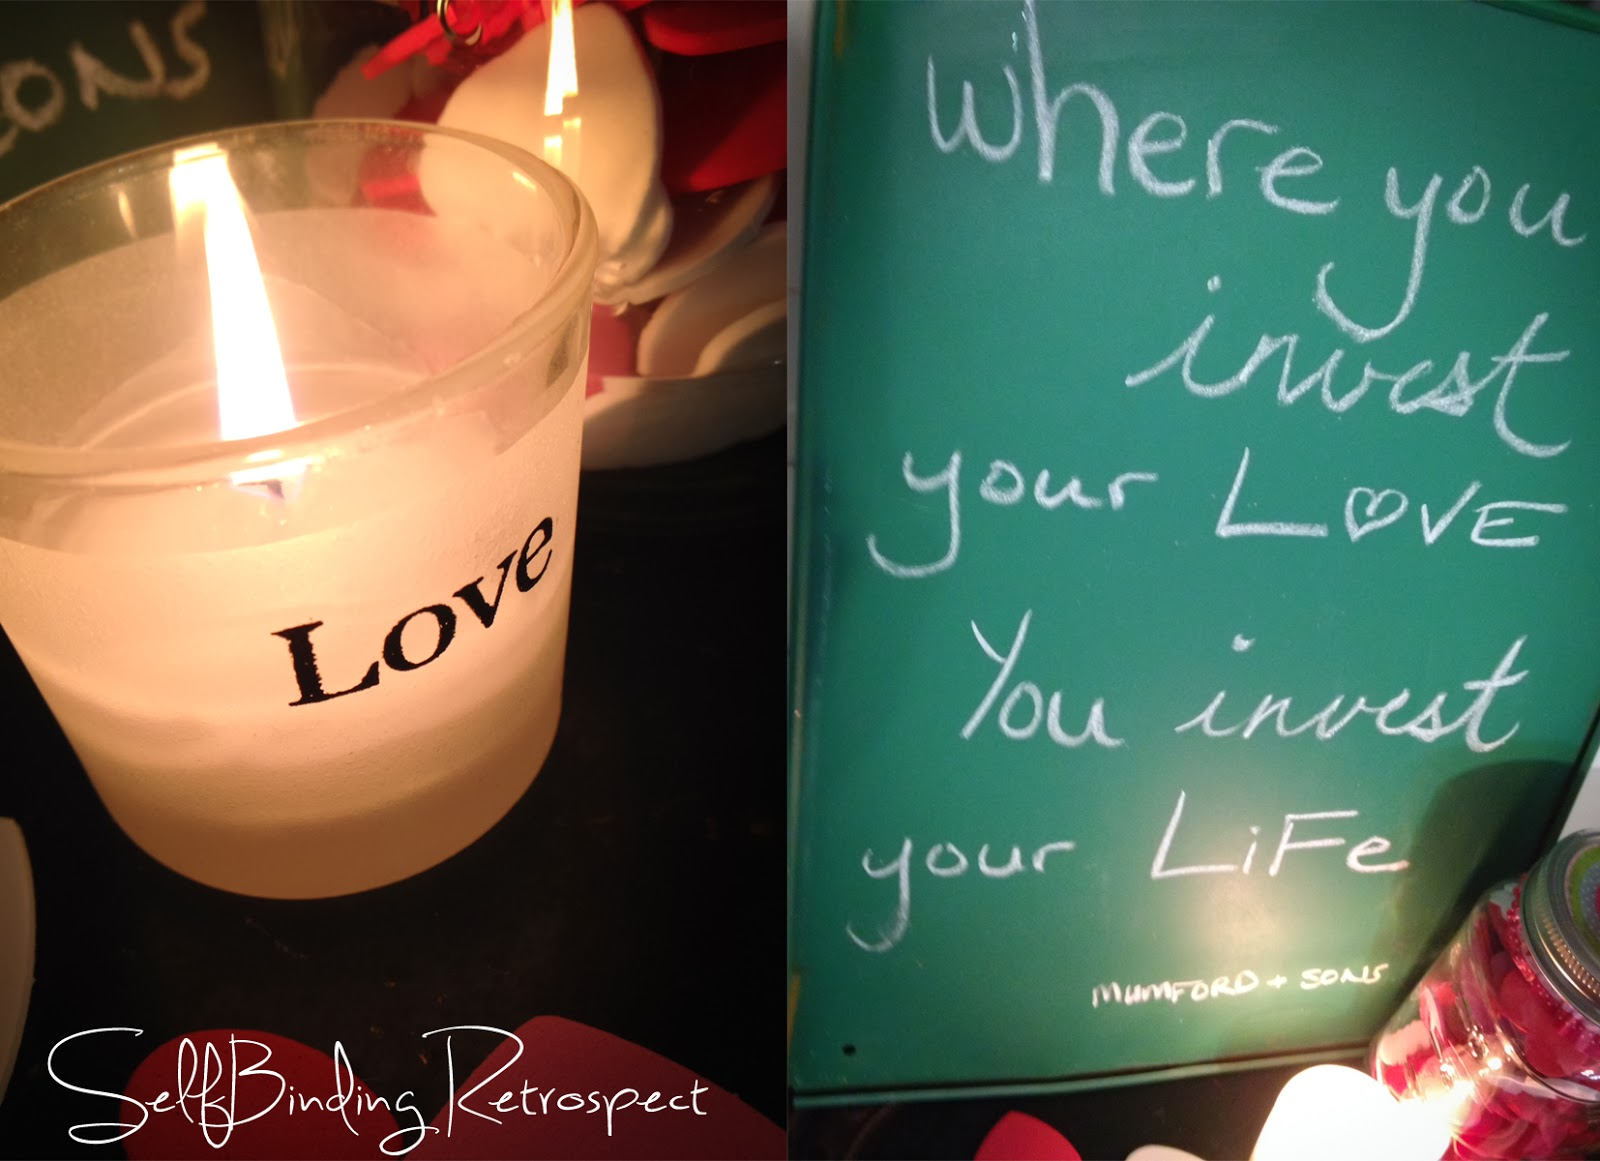 where you invest your love you invest your life, mumford and sons quote,